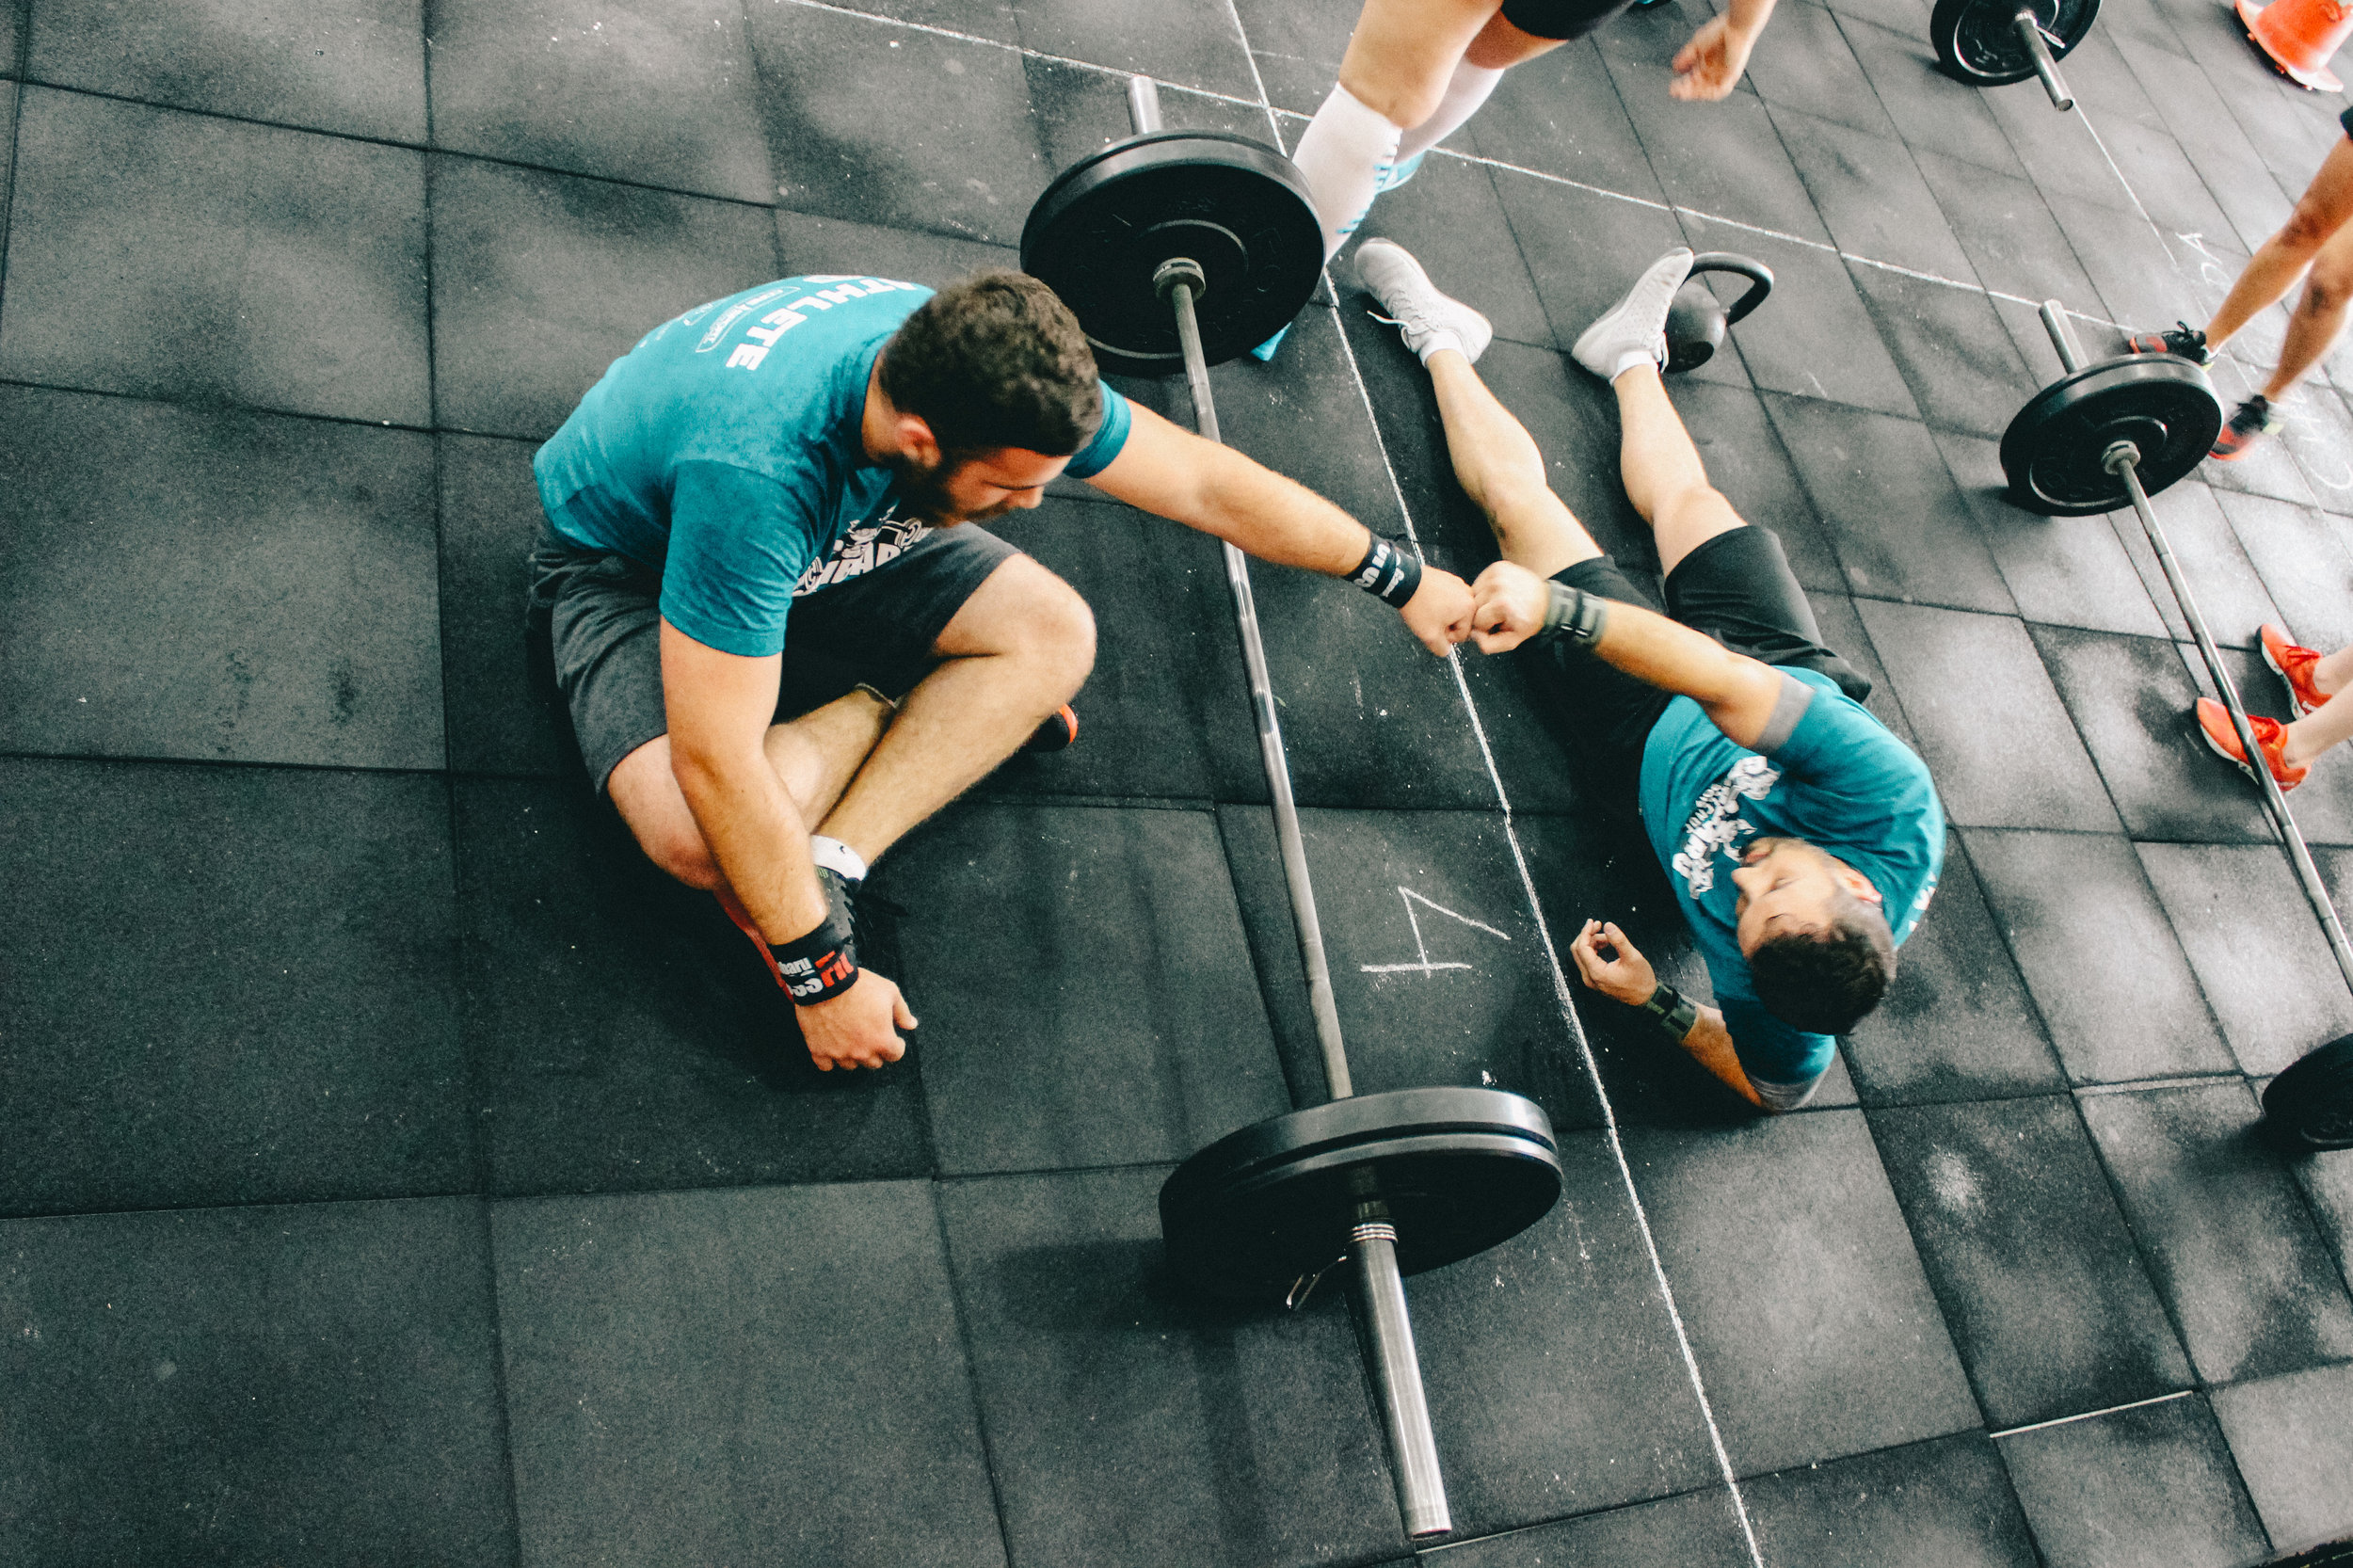 Personal Training - There's no better way to improve your fitness by any measure than to work one-on-one with one of our amazing coaches. 30 and 60 minute sessions are available and we can work around your schedule.